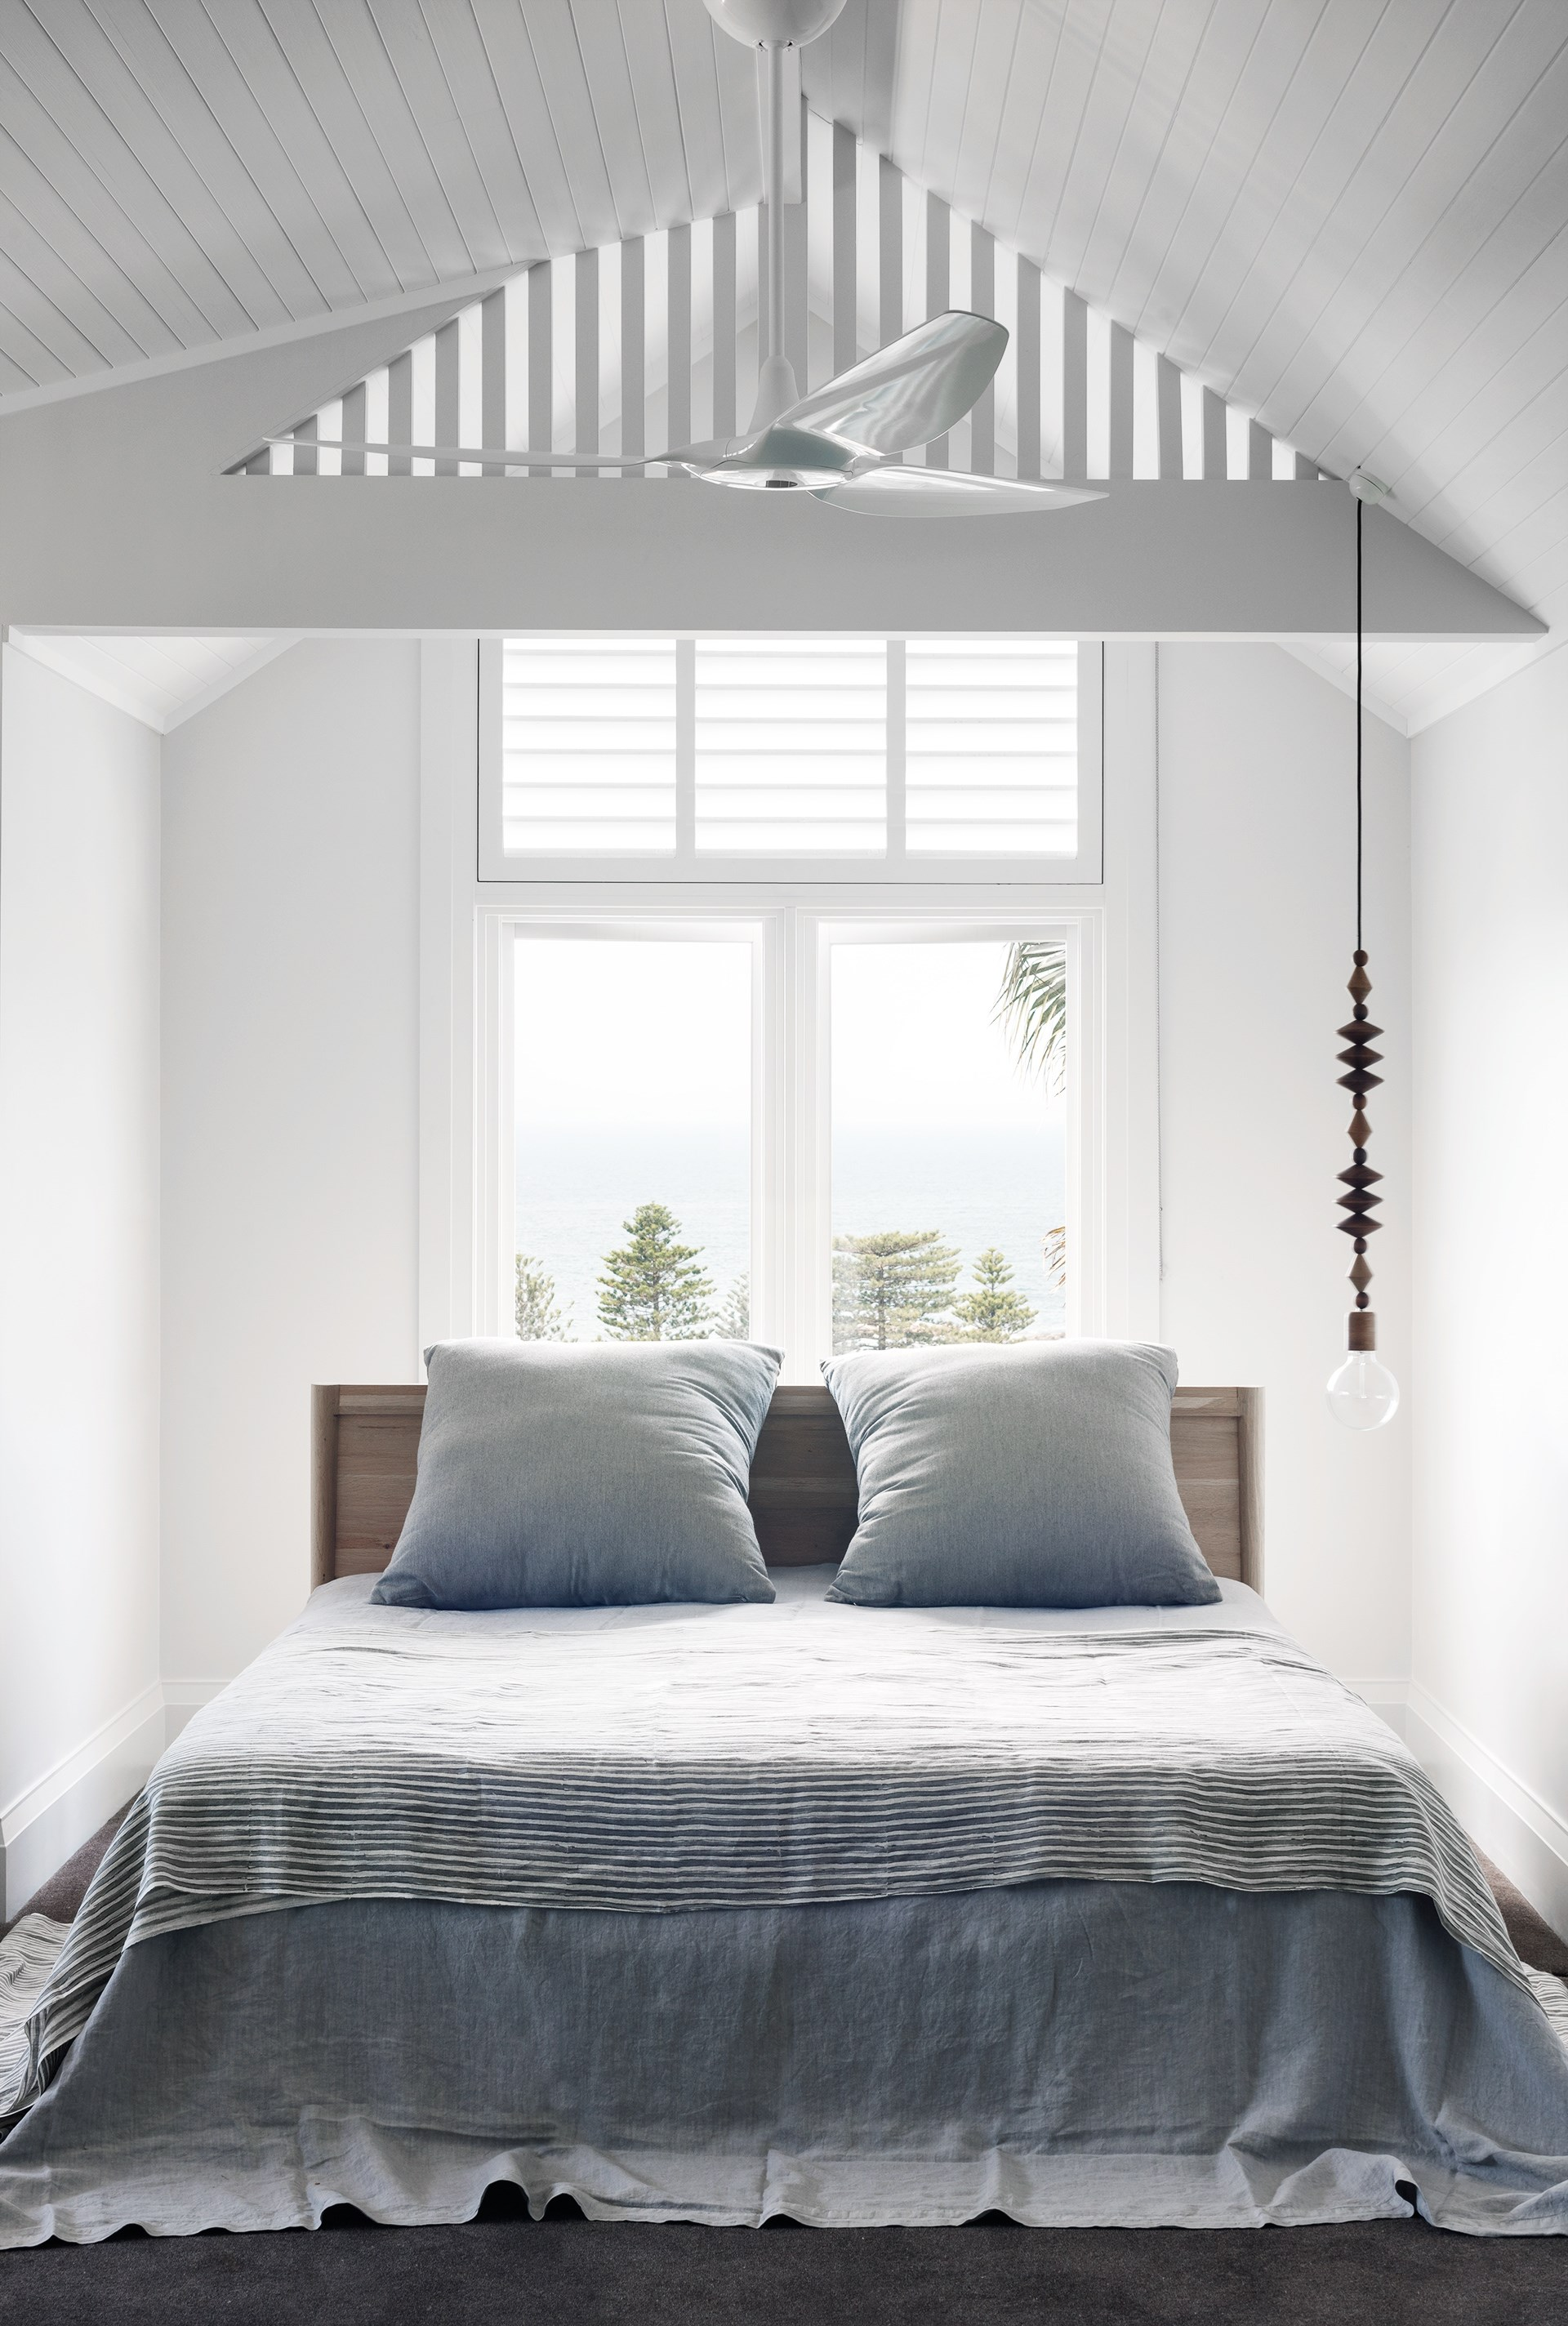 This serene bedroom within a [Palm Beach bungalow](http://www.homestolove.com.au/sandstone-house-restored-to-former-glory-3731) is an excellent example of 'less is more'. Photo: Nicholas Watt / *Belle*